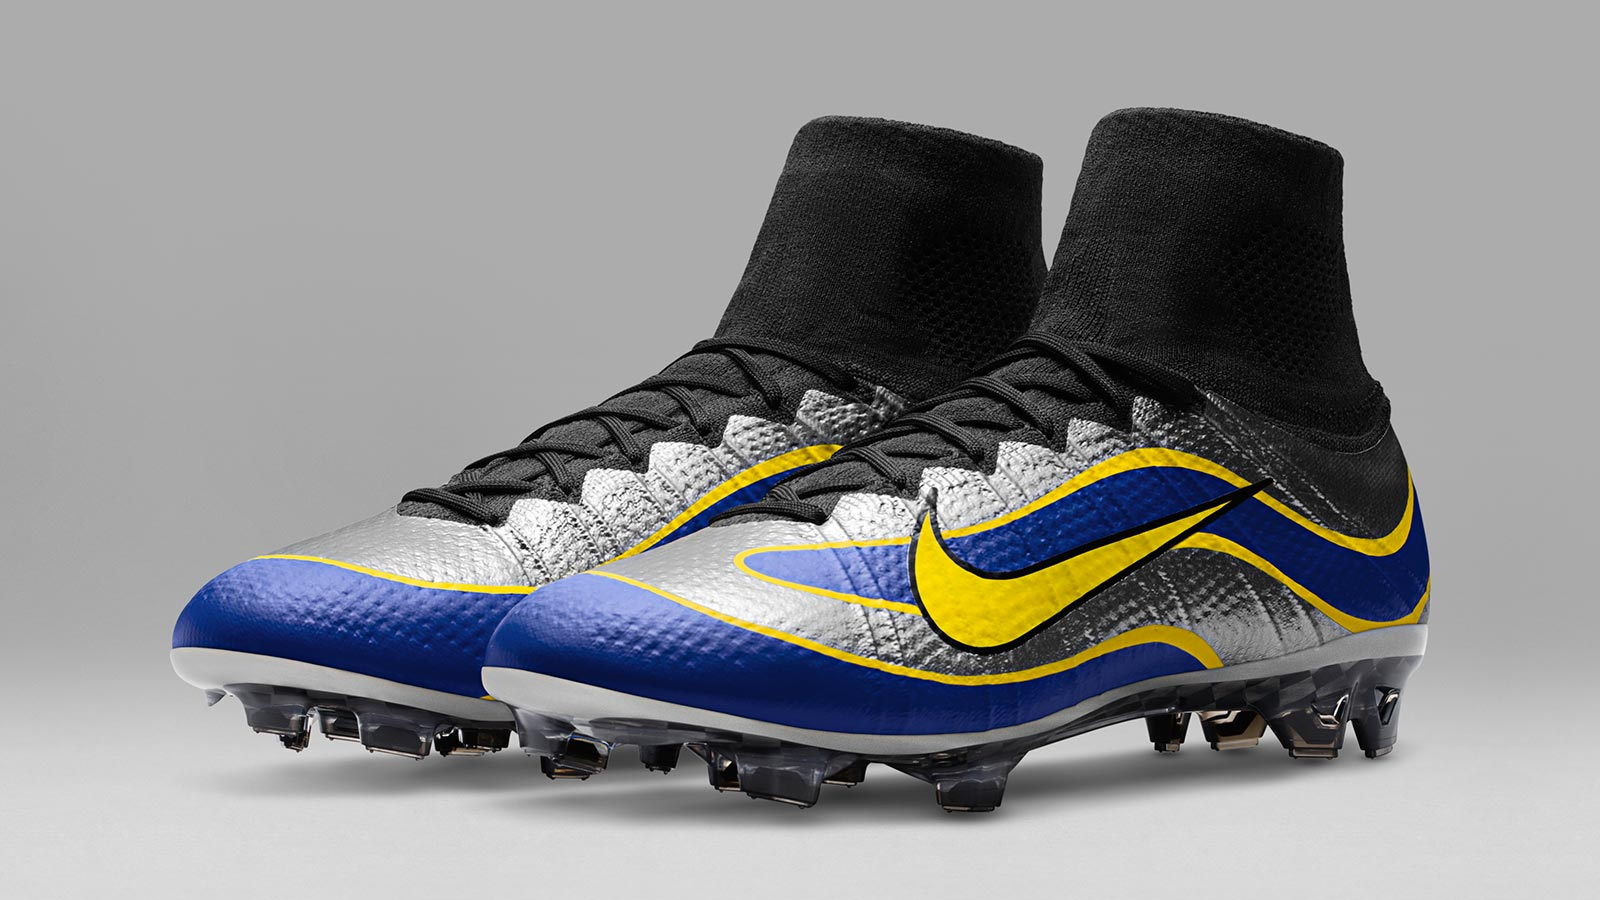 exclusive nike mercurial neymar 2018 signature boots to